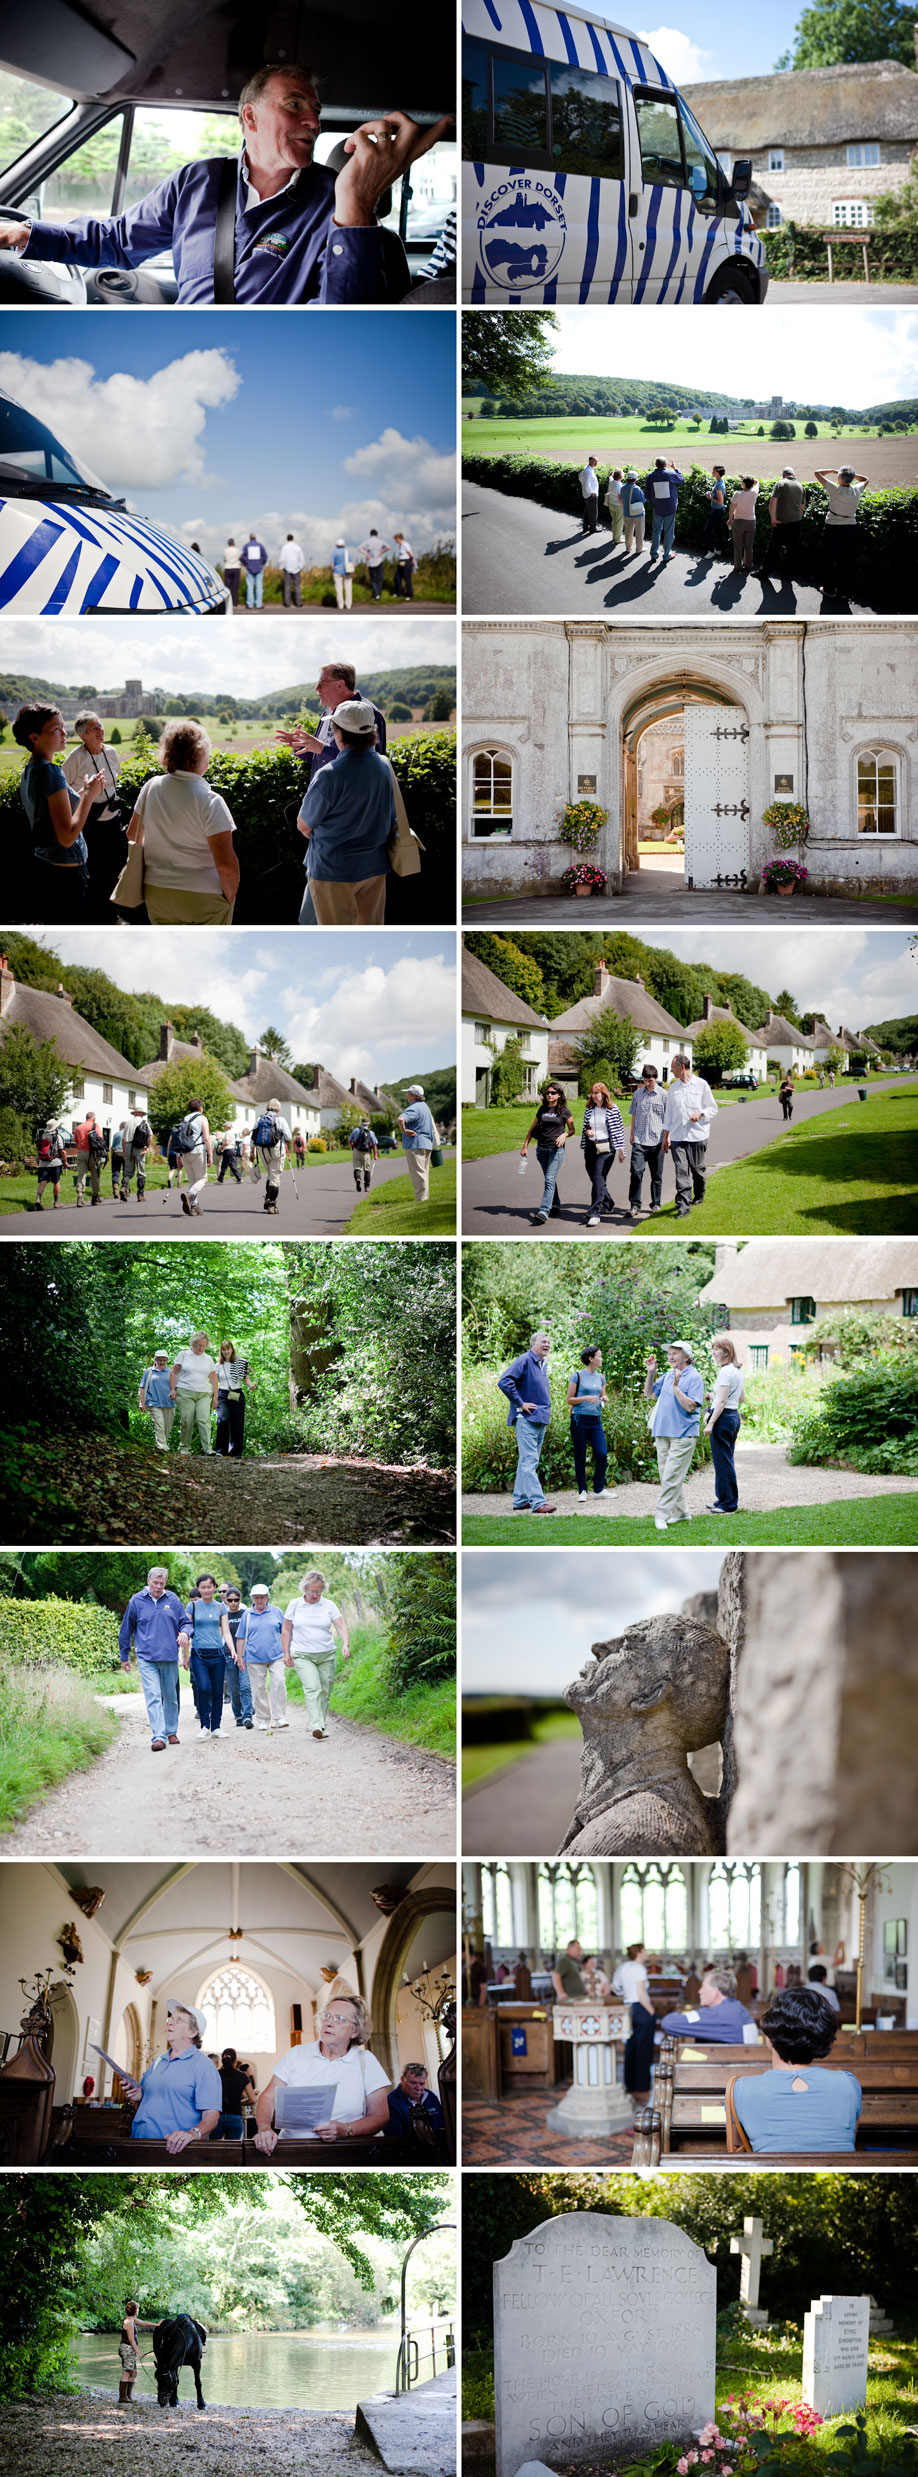 Discovering deepest Dorset with Discover Dorset photographed by Bournemouth photographer Phillip Allen